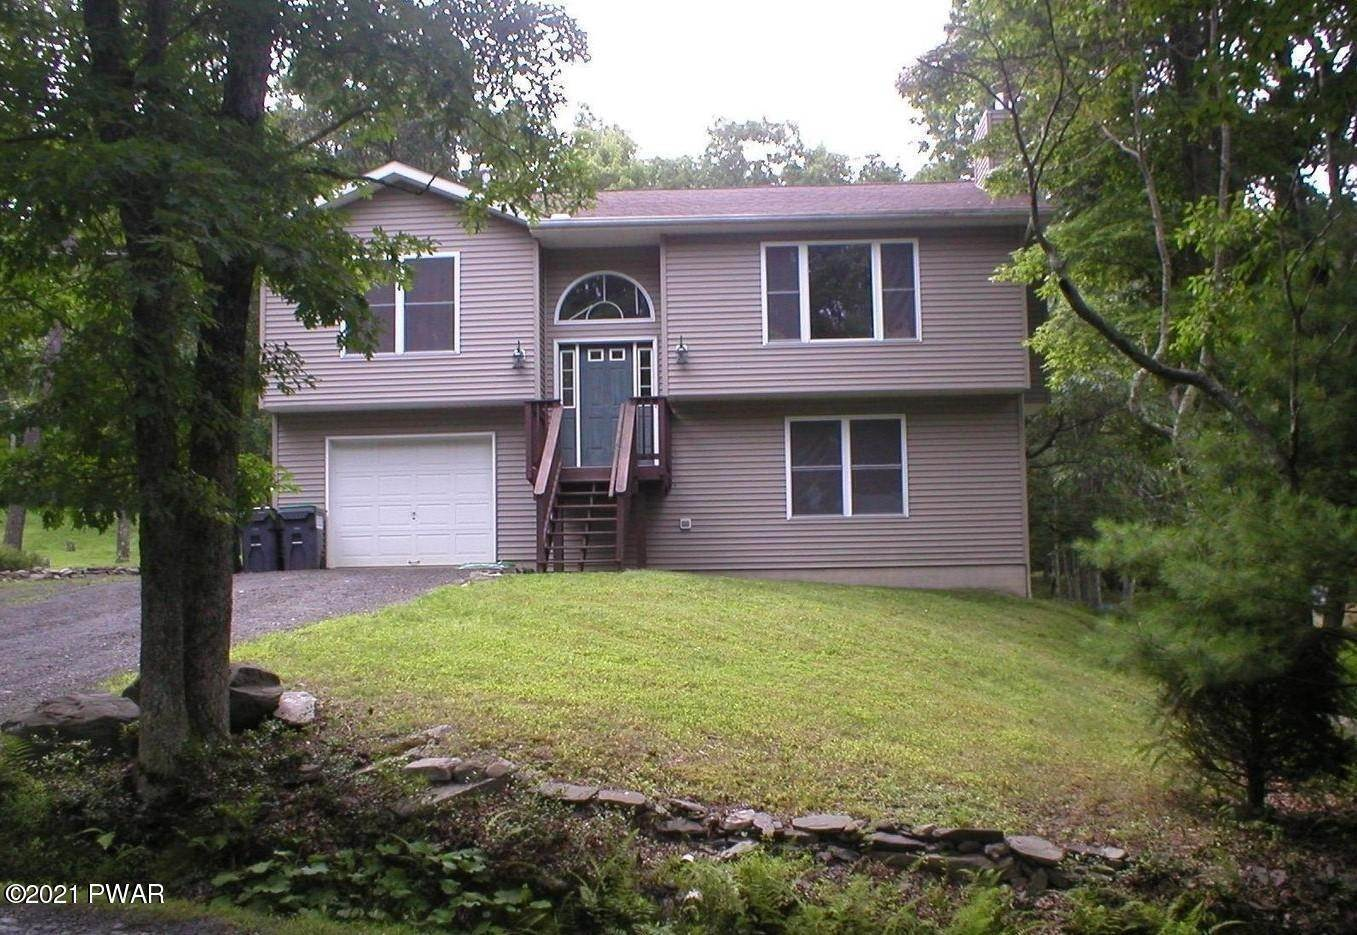 Property for Sale at 103 Hebula Rd Milford, Pennsylvania 18337 United States